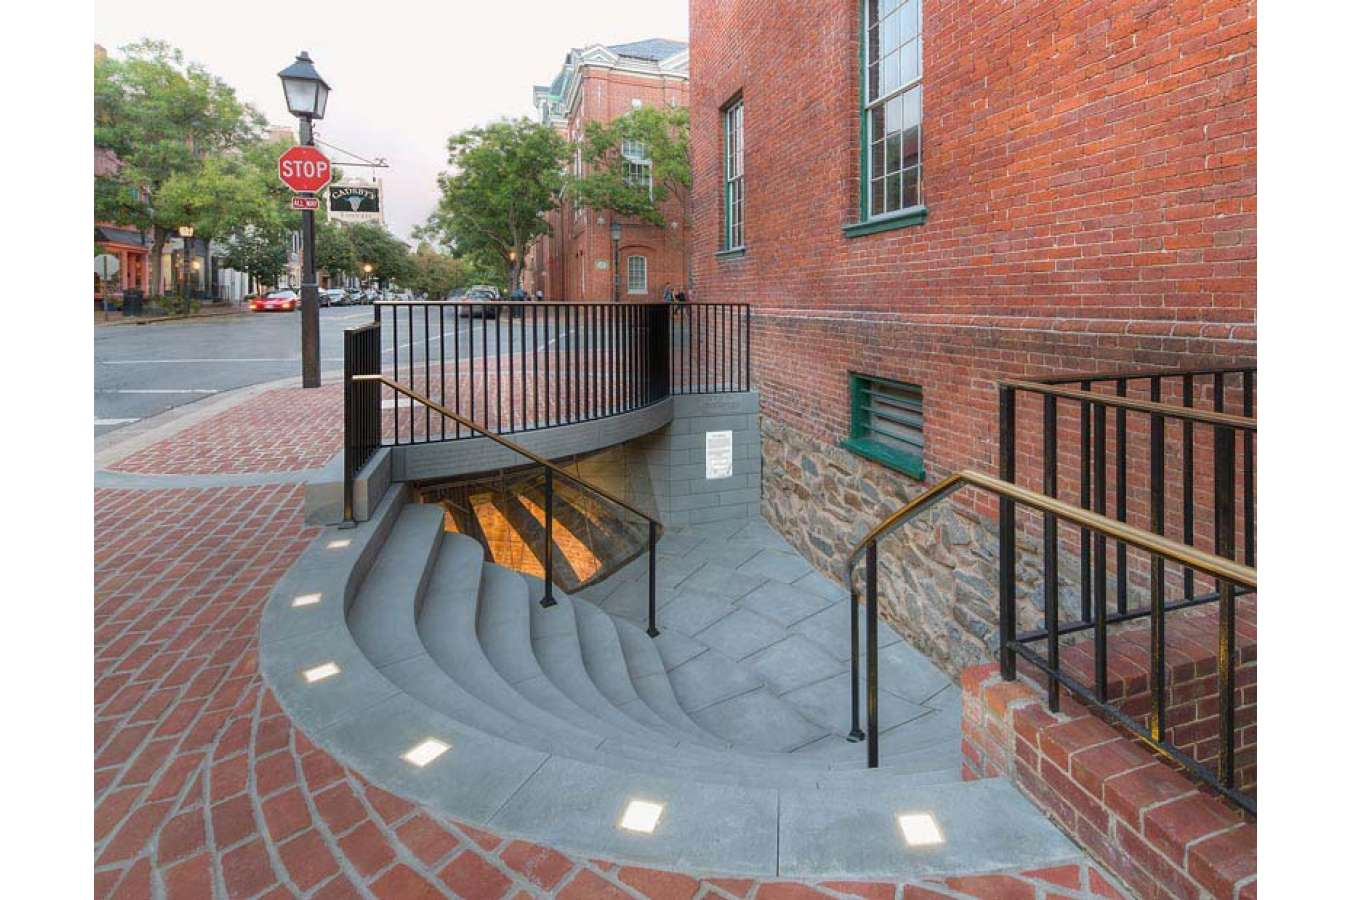 2a 1 HDP_130831_03_FS Bell Stairs : Street view of Gadsby's Tavern Ice Well after restoration and redesign